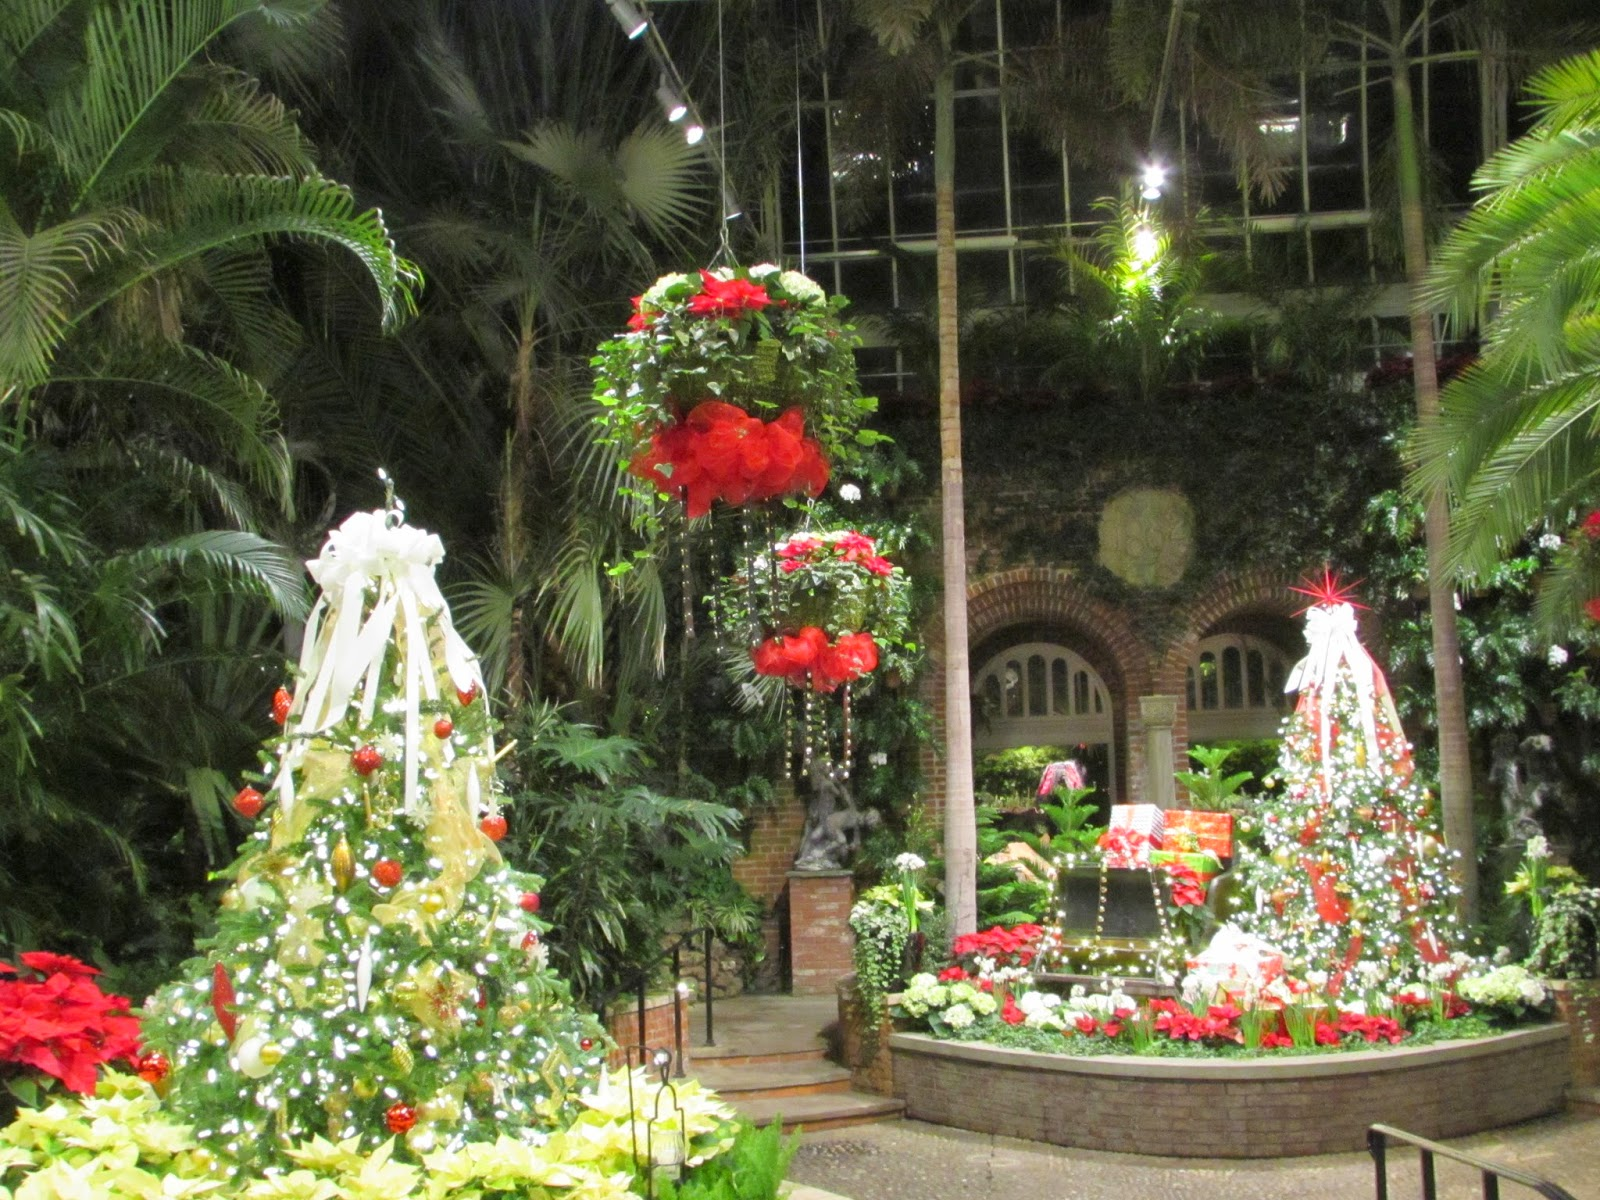 Holiday things to do phipps conservatory in oakland pittsburgh conservatory during the holiday season and during all of their displays throughout the year here are reports that i wrote about the spring flower show dhlflorist Choice Image